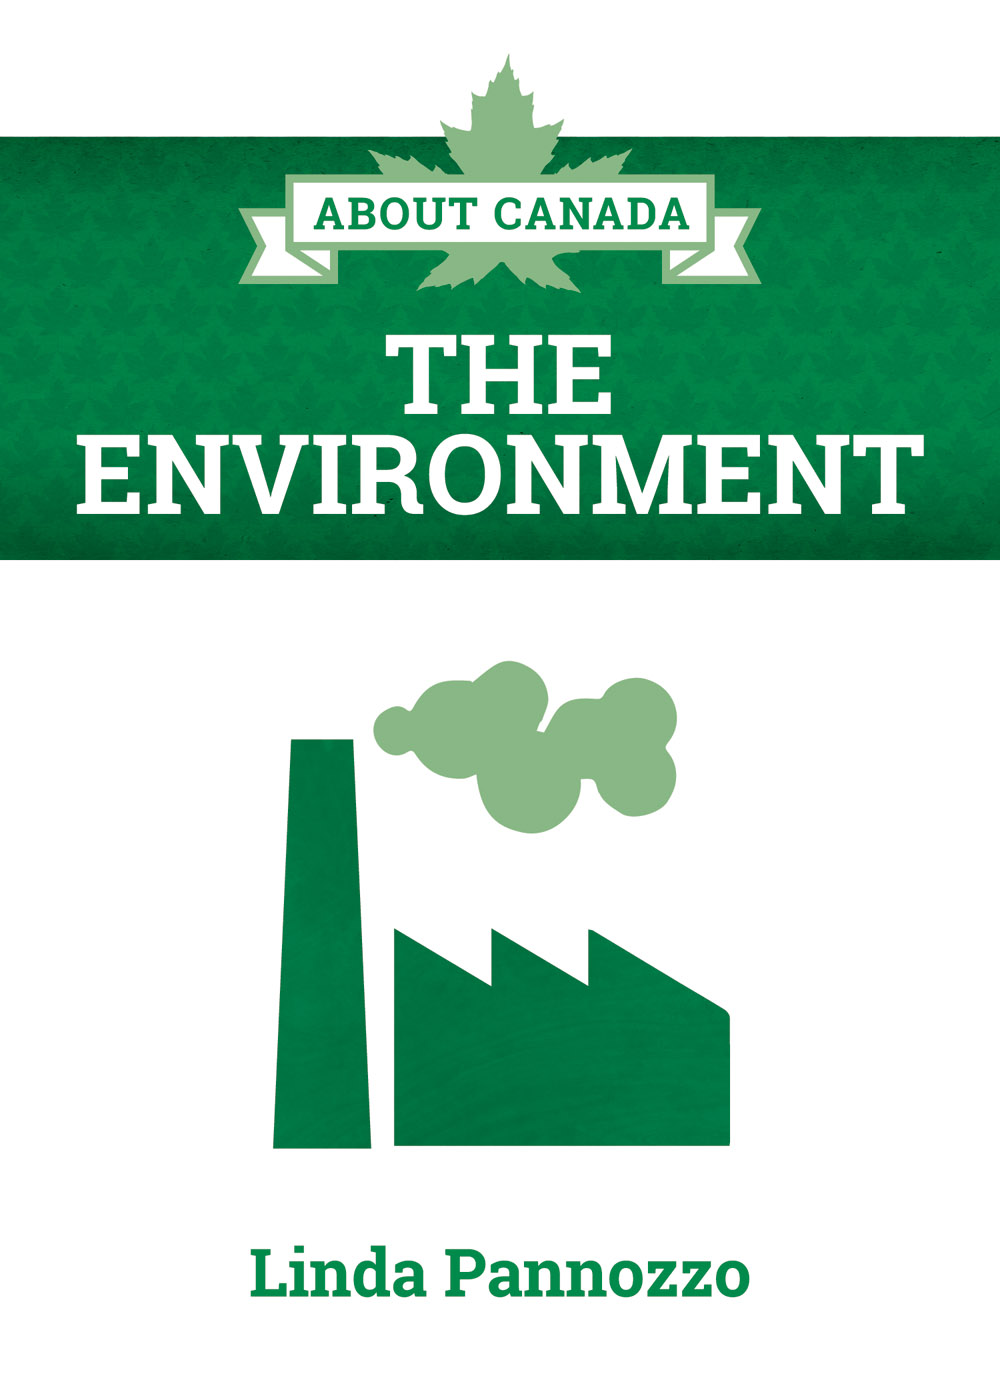 About Canada: The Environment